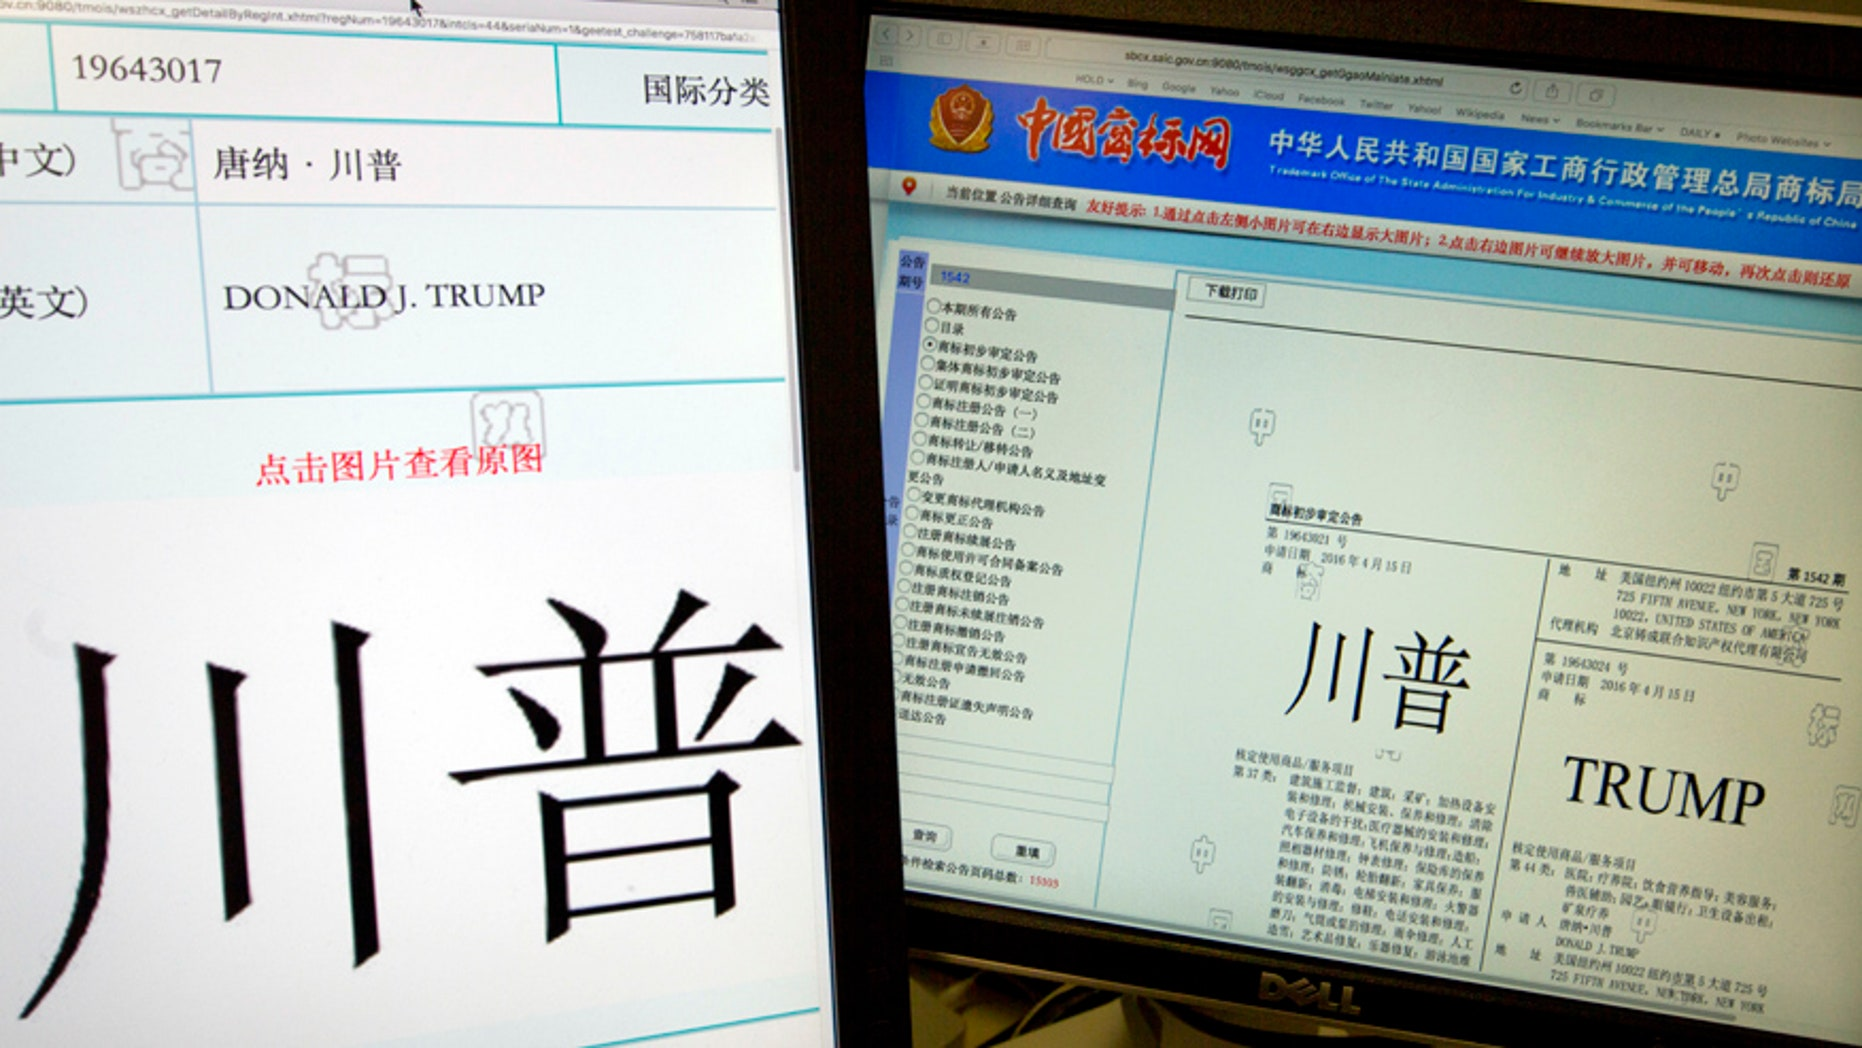 FILE - In this March 8, 2017, file photo, some of the Trump trademarks approved by the Chinese government are displayed on the trademark office's website in Beijing, China. Beijing has reversed itself on 9 Trump trademarks, granting preliminary approval for marks covering salon services and socks, among other things, that it initially rejected. Dozens more Trump trademarks have been formally registered in recent weeks, bringing to 39 the total number of Trump trademarks China has formally approved since the inauguration. (AP Photo/Ng Han Guan, File)